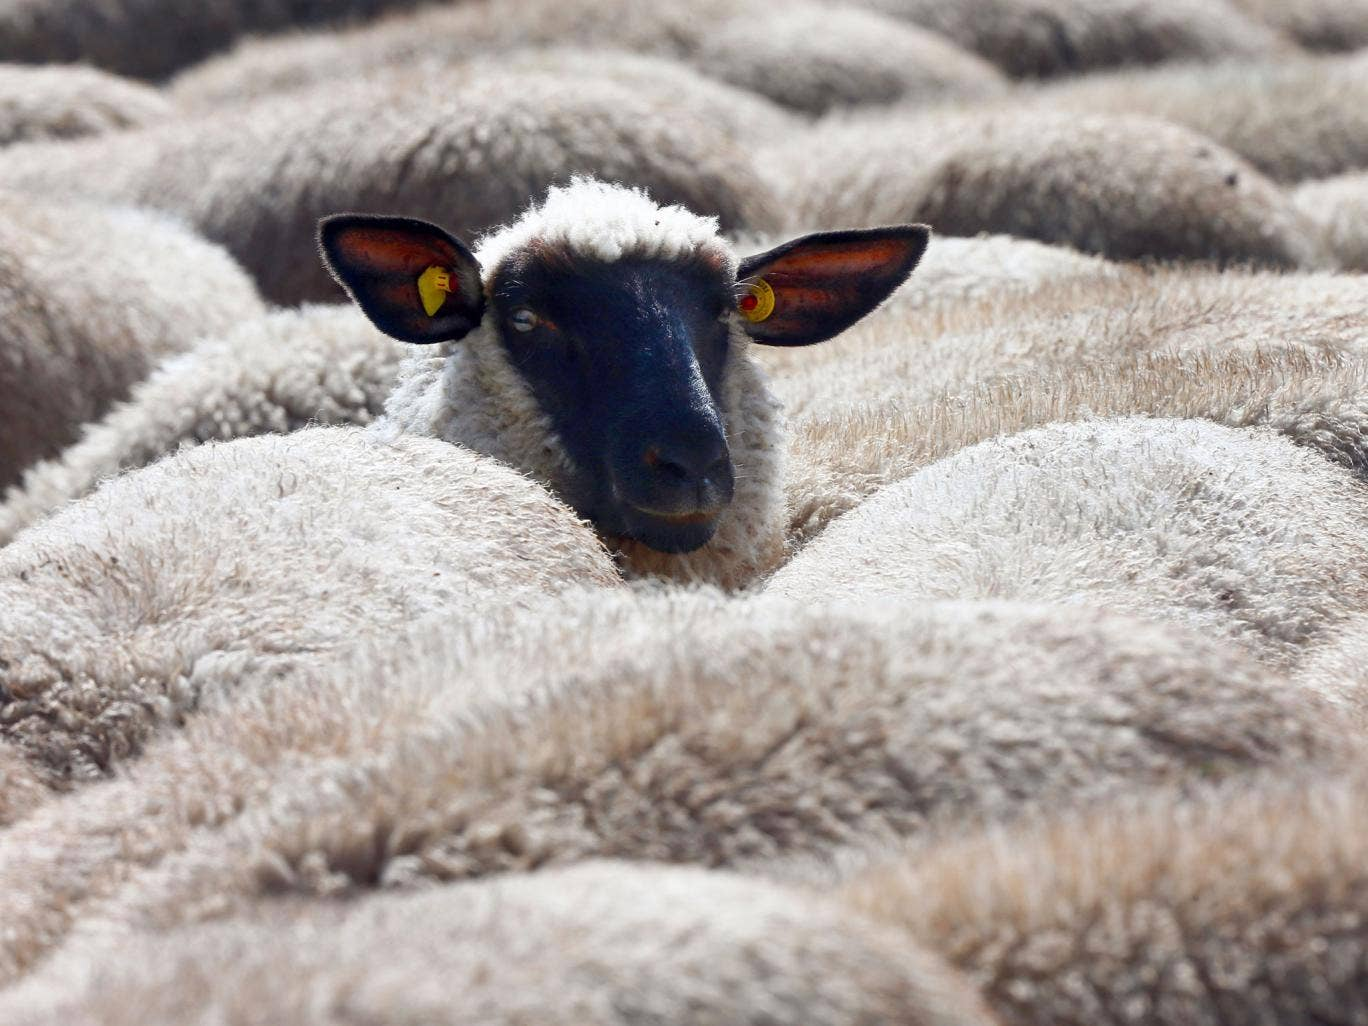 Man has sex with sheep pics 84